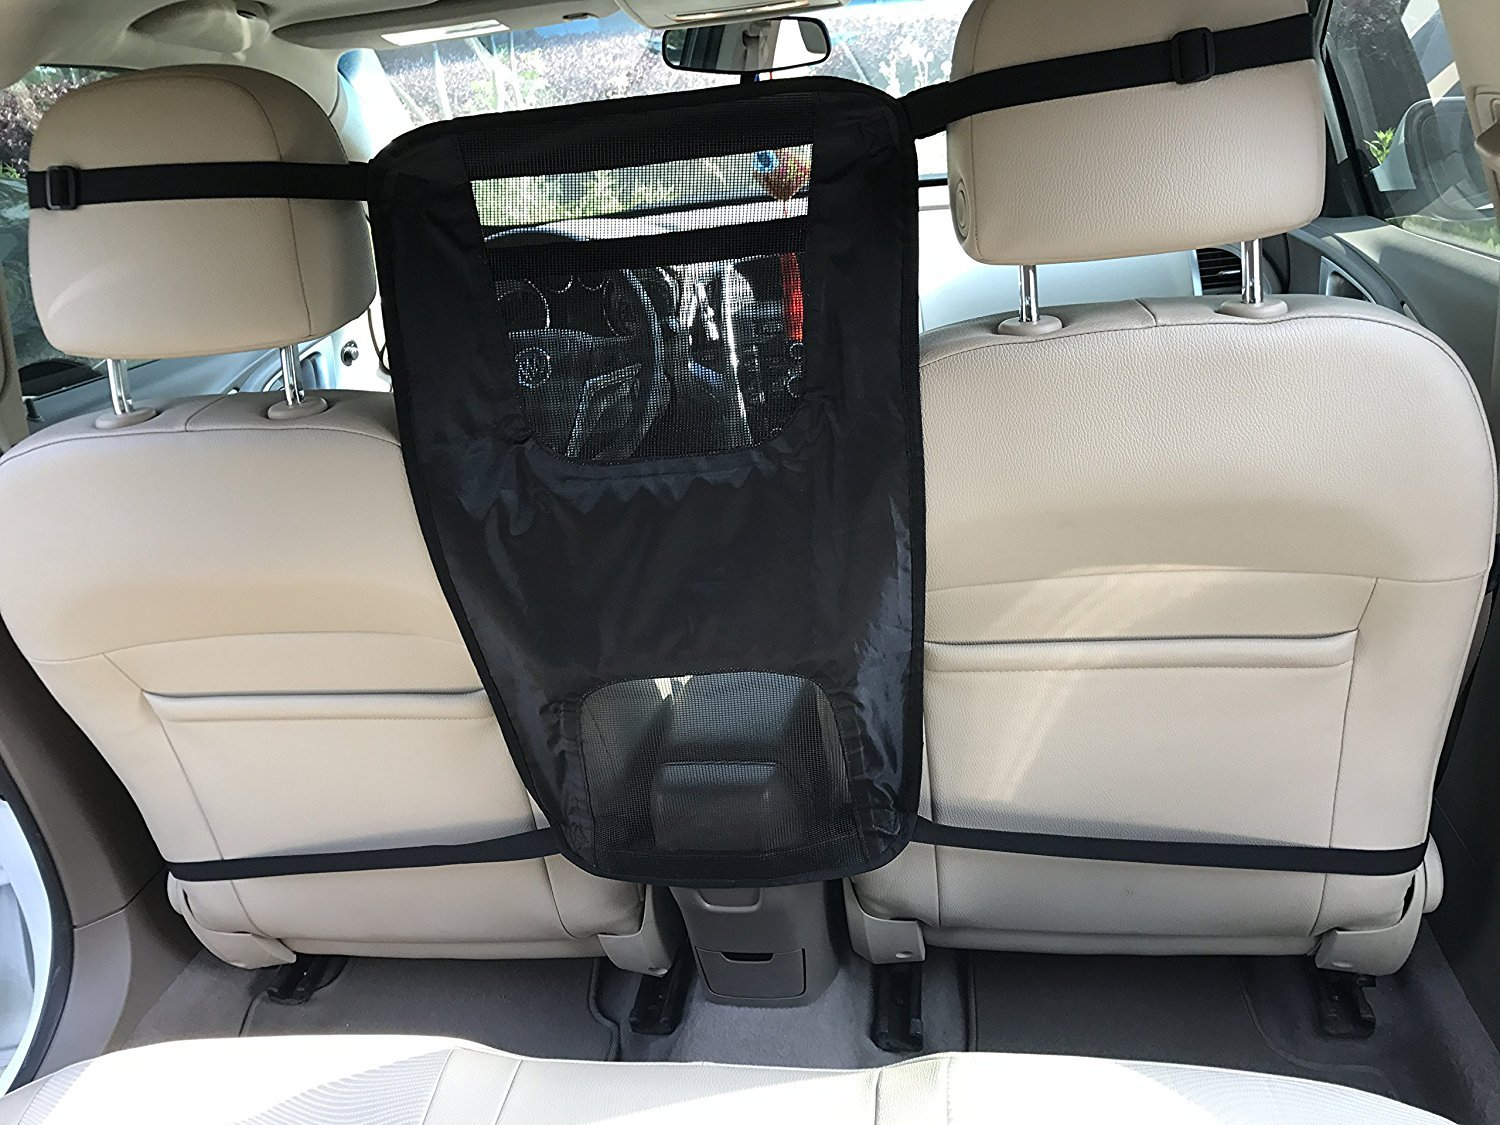 EXPAWLORER Frontseat Net Pet Barriers for Vehicles, Travel Accessories, Lightweight, Durable & Multifunctional